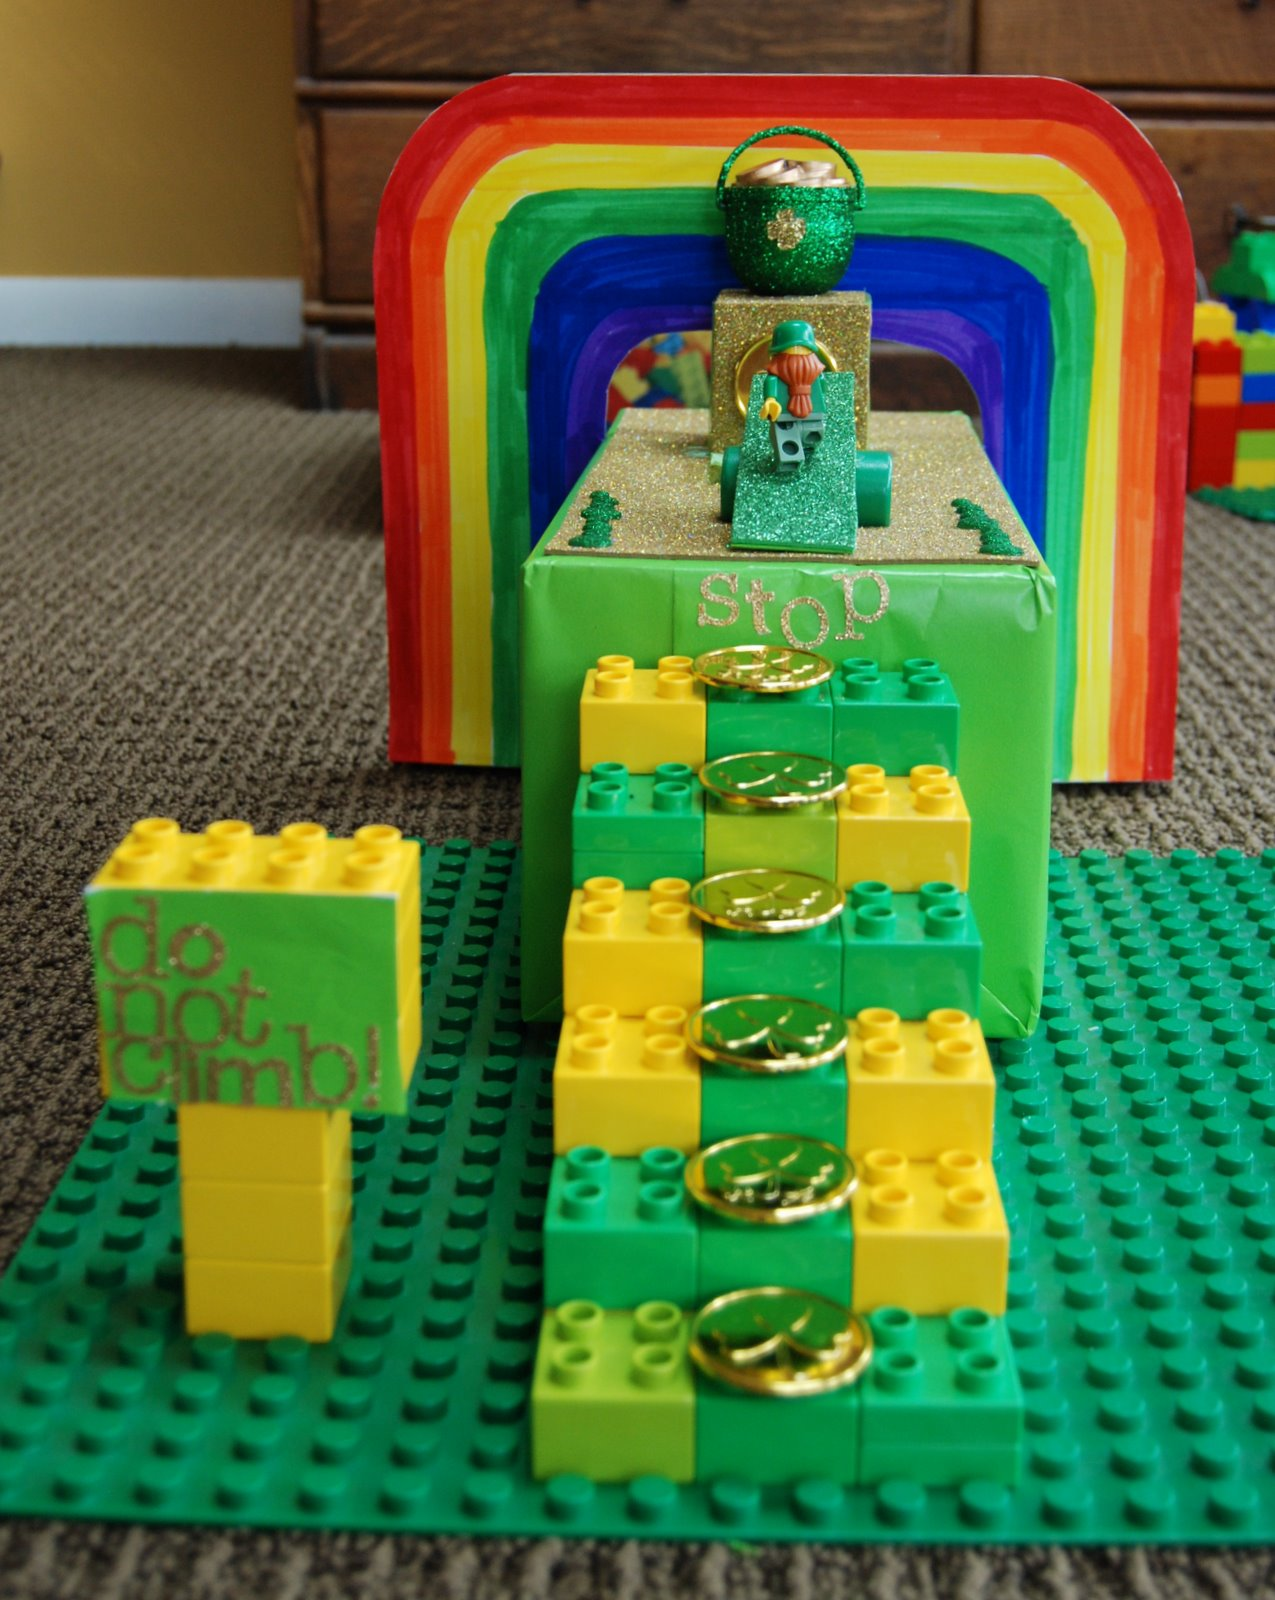 How To Catch A Leprechaun: Check out this LEGO Leprechaun trap from A Blonde and 3 Boys!